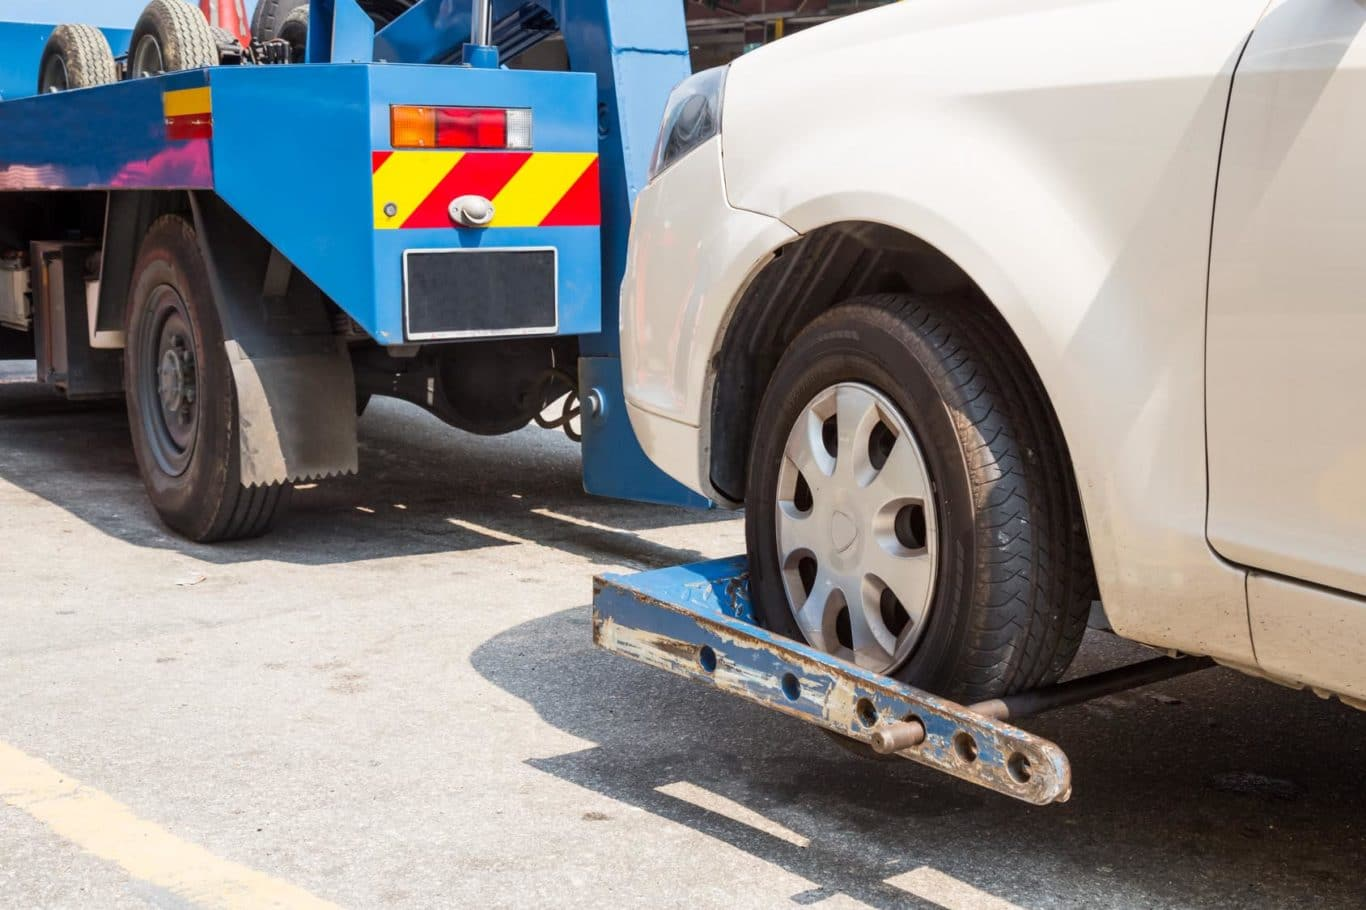 Templeogue expert Breakdown Recovery services